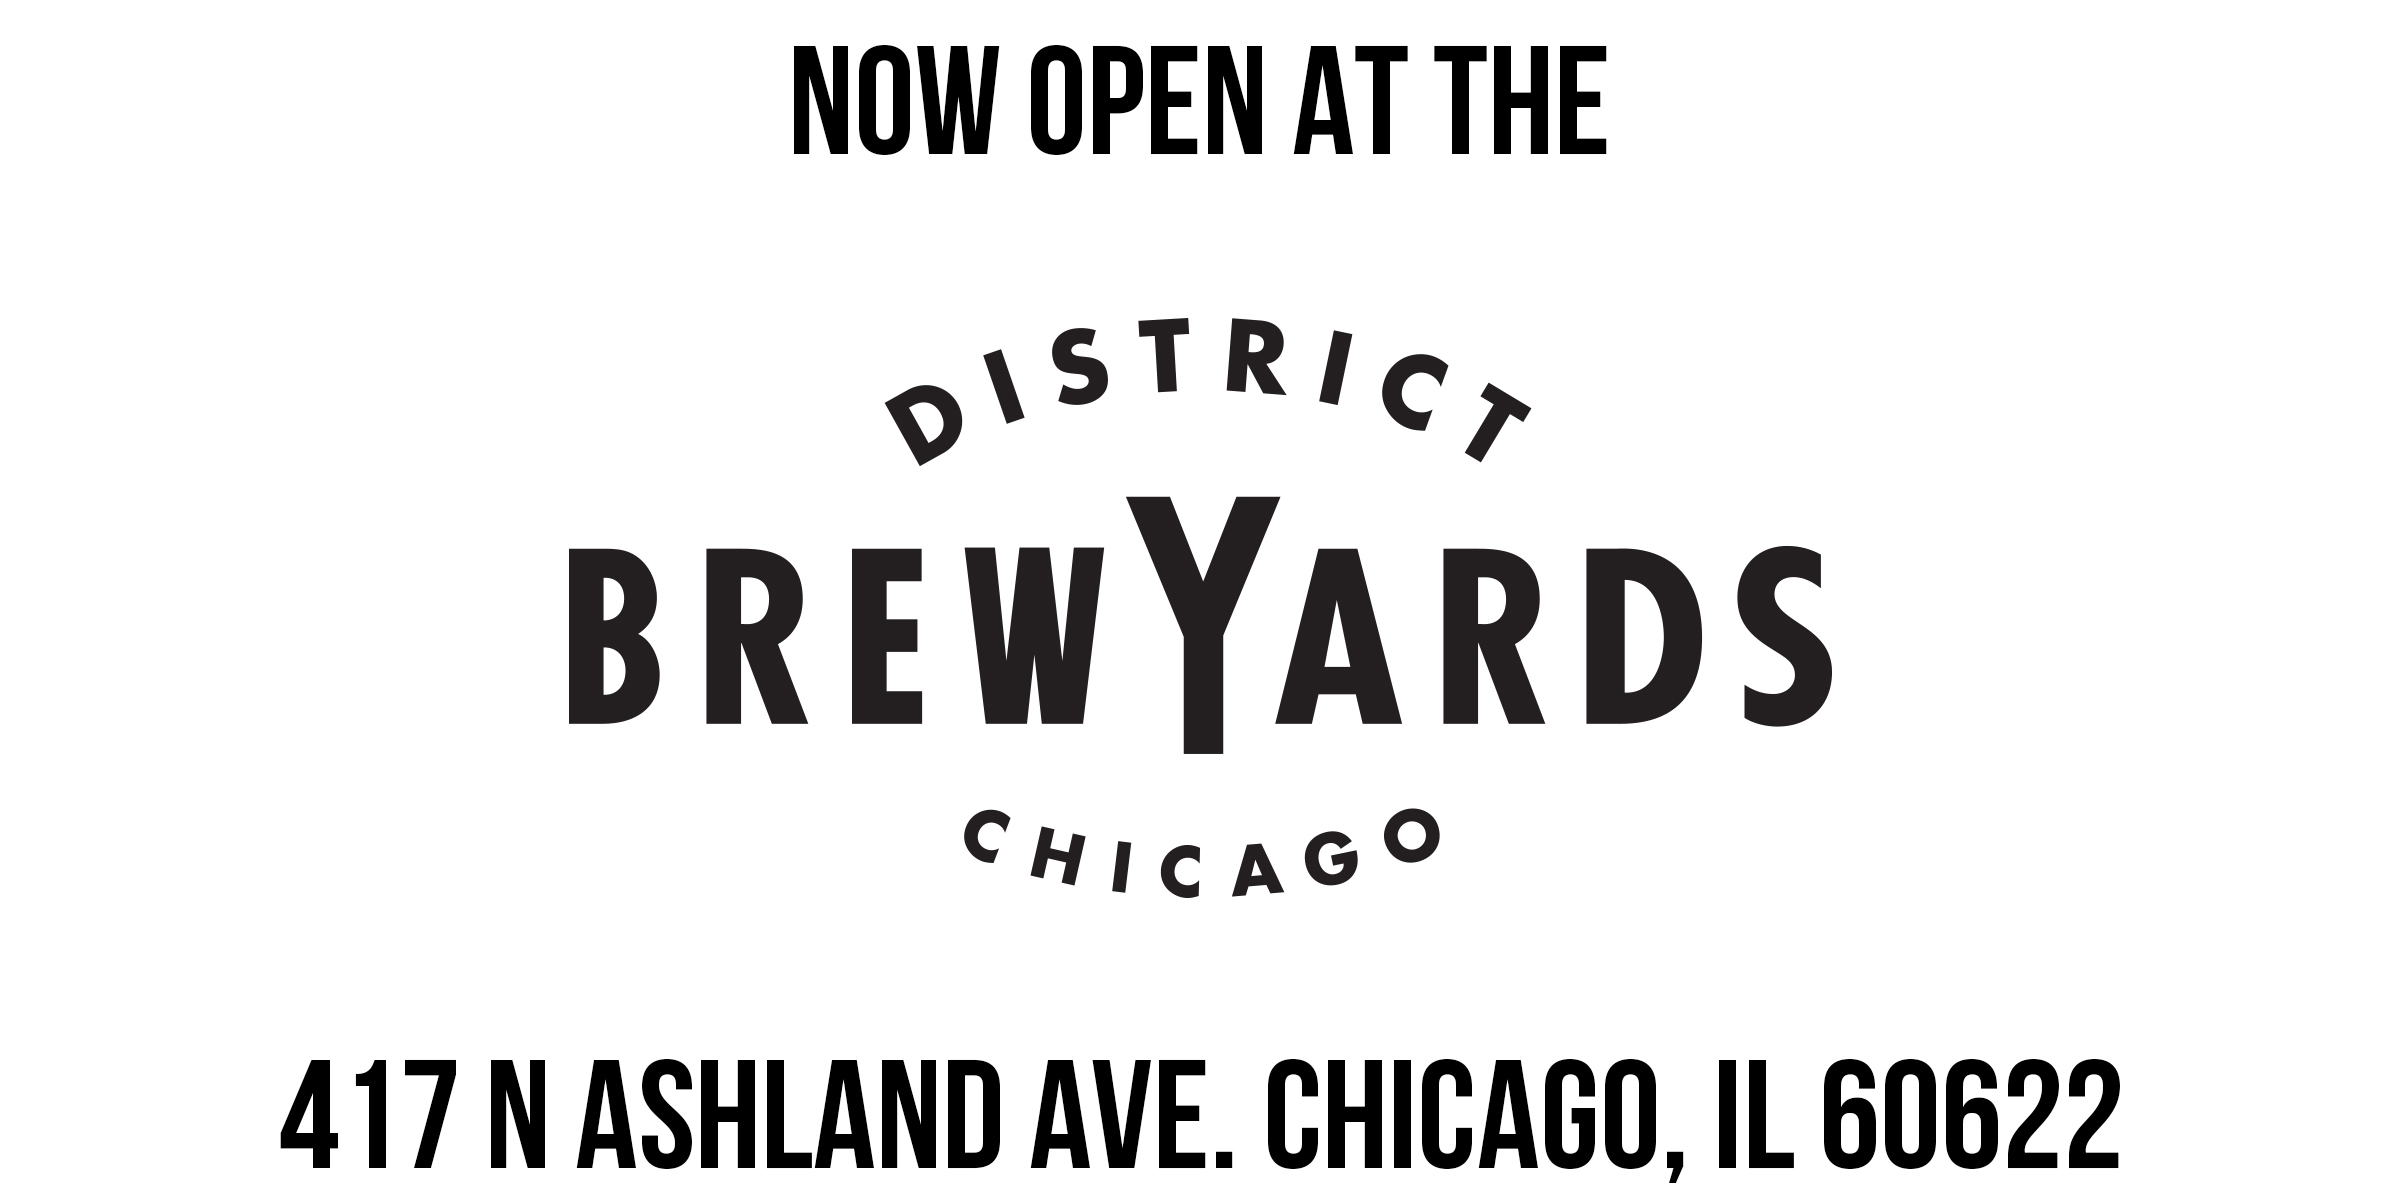 Now open at the District Brew Yards 417 N. Ashland Ave. Chicago, IL 60622